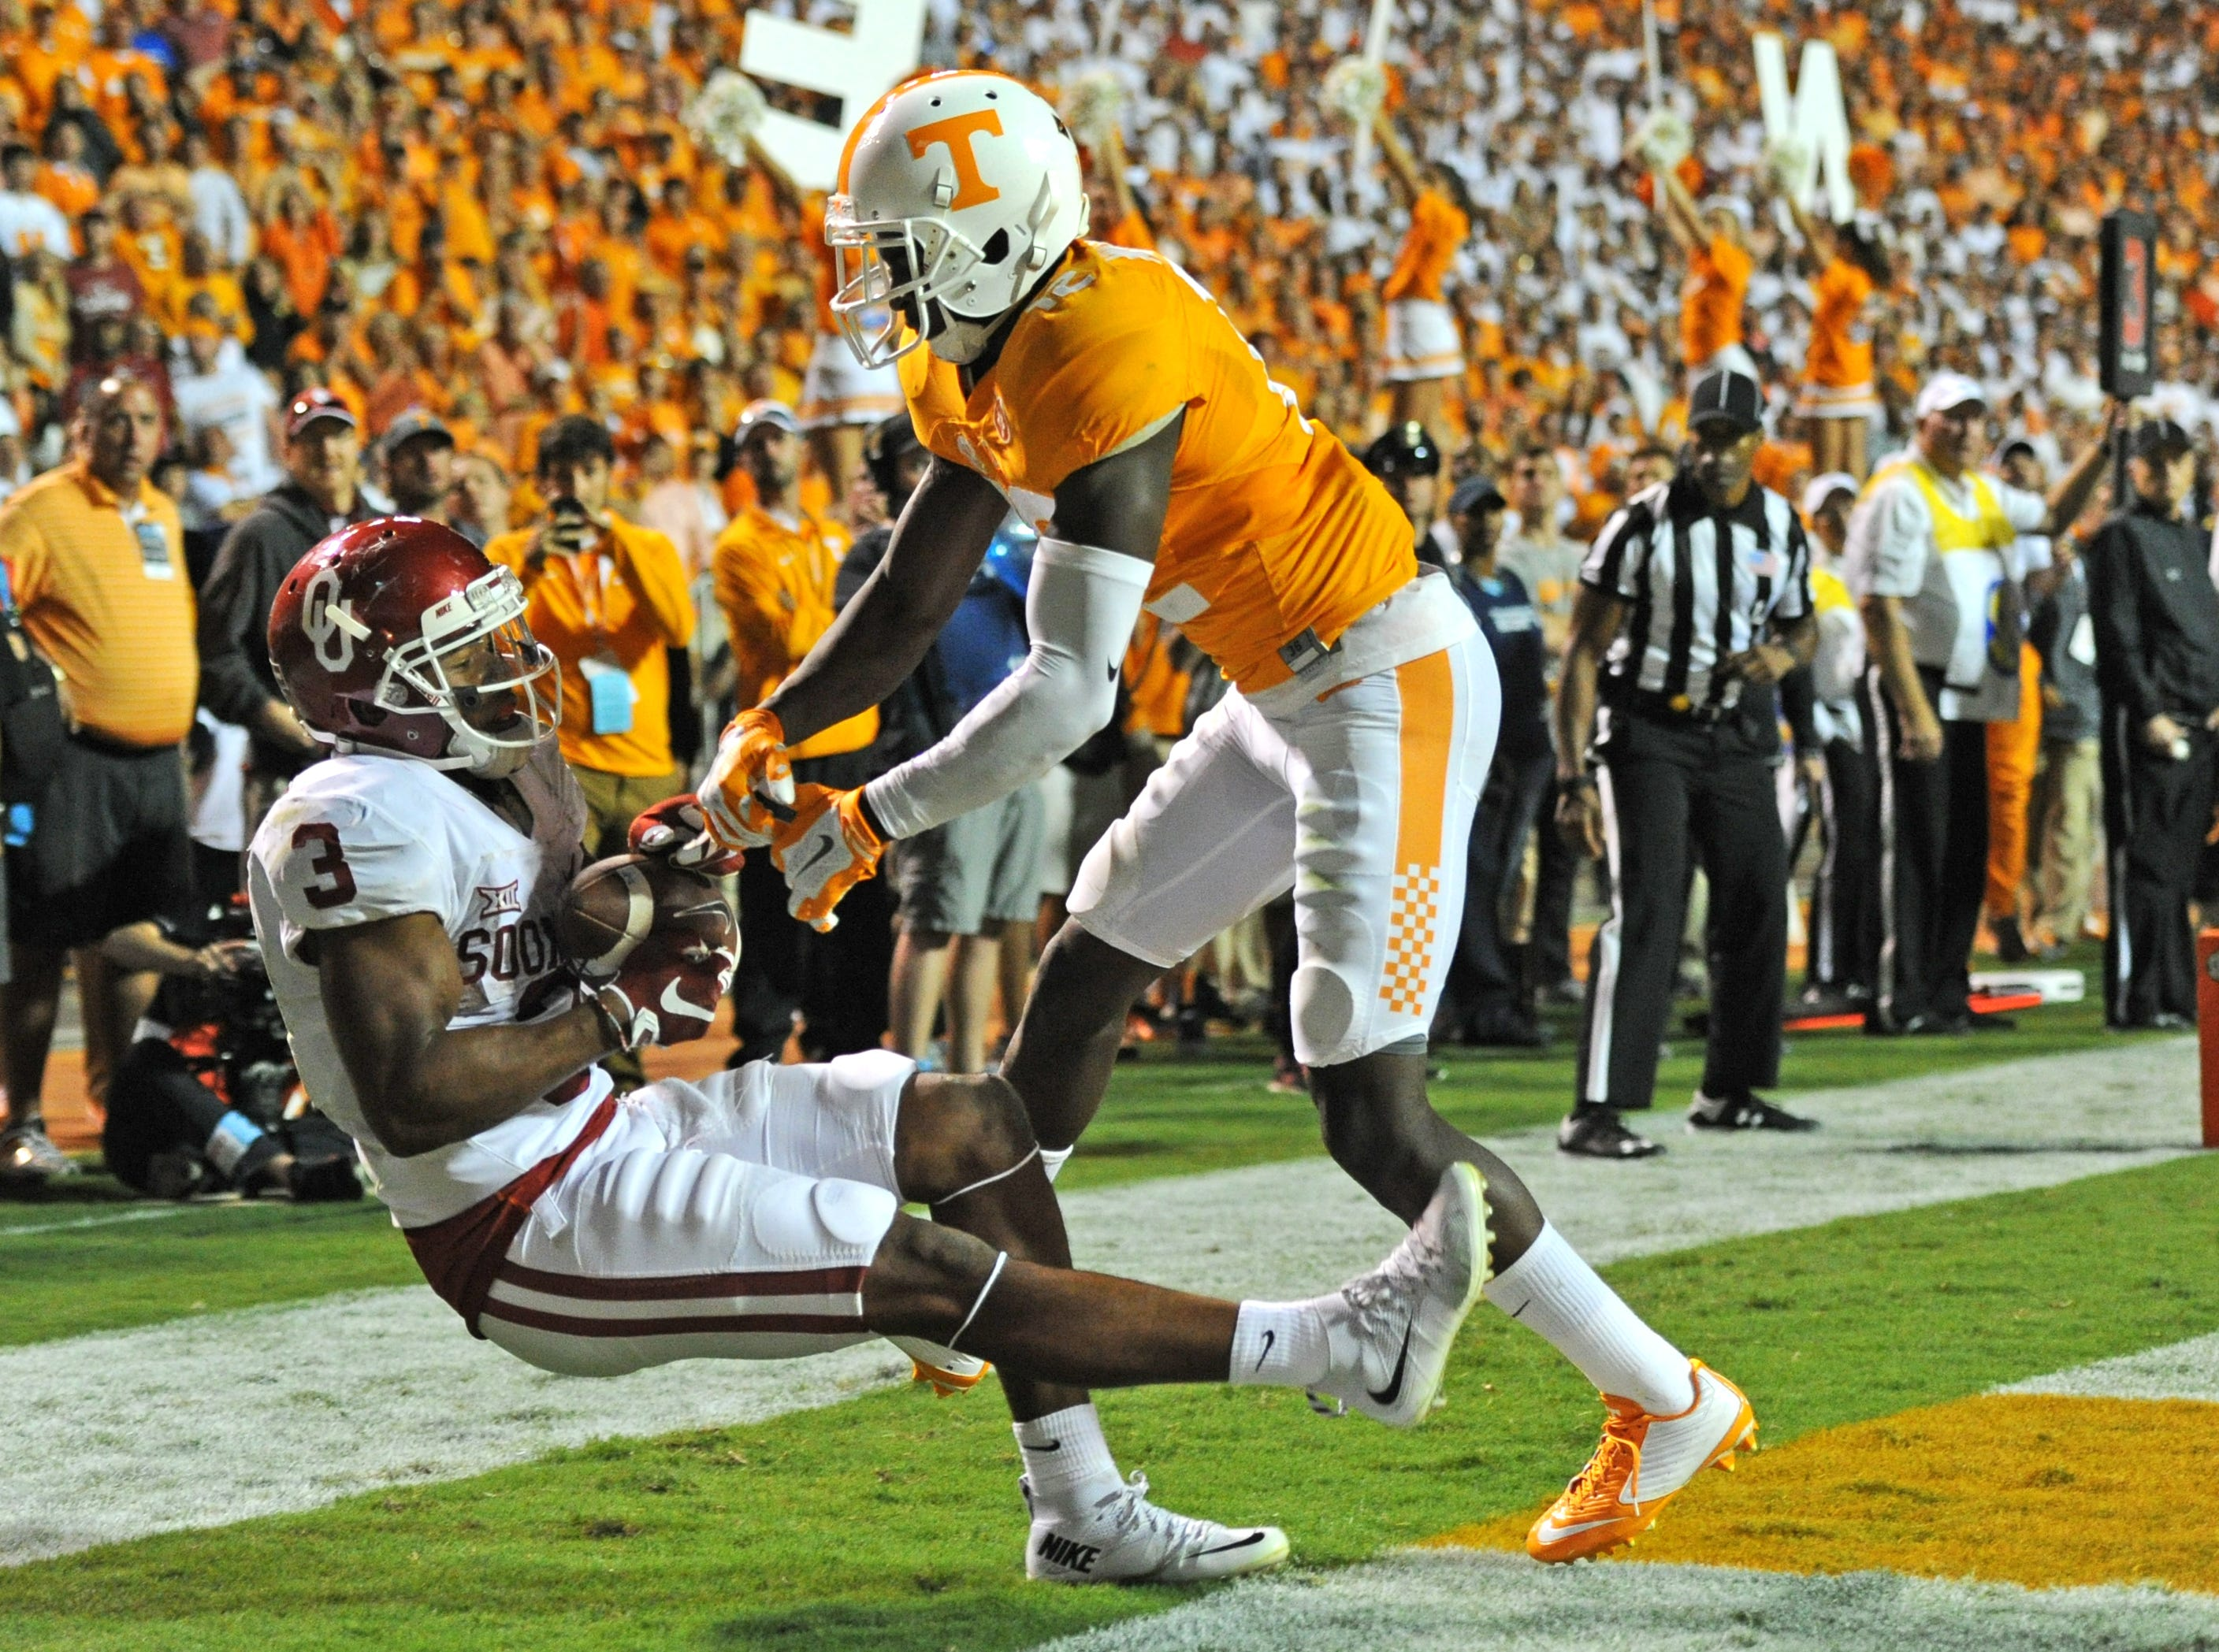 Oklahoma wide receiver Sterling Shepard (3) catches a touchdown pass against Tennessee defensive back Emmanuel Moseley (12) to tie the game 17-17 and send it into overtime at Neyland Stadium on Saturday, Sept. 12, 2015 in Knoxville, Tenn. Oklahoma won 31-24.